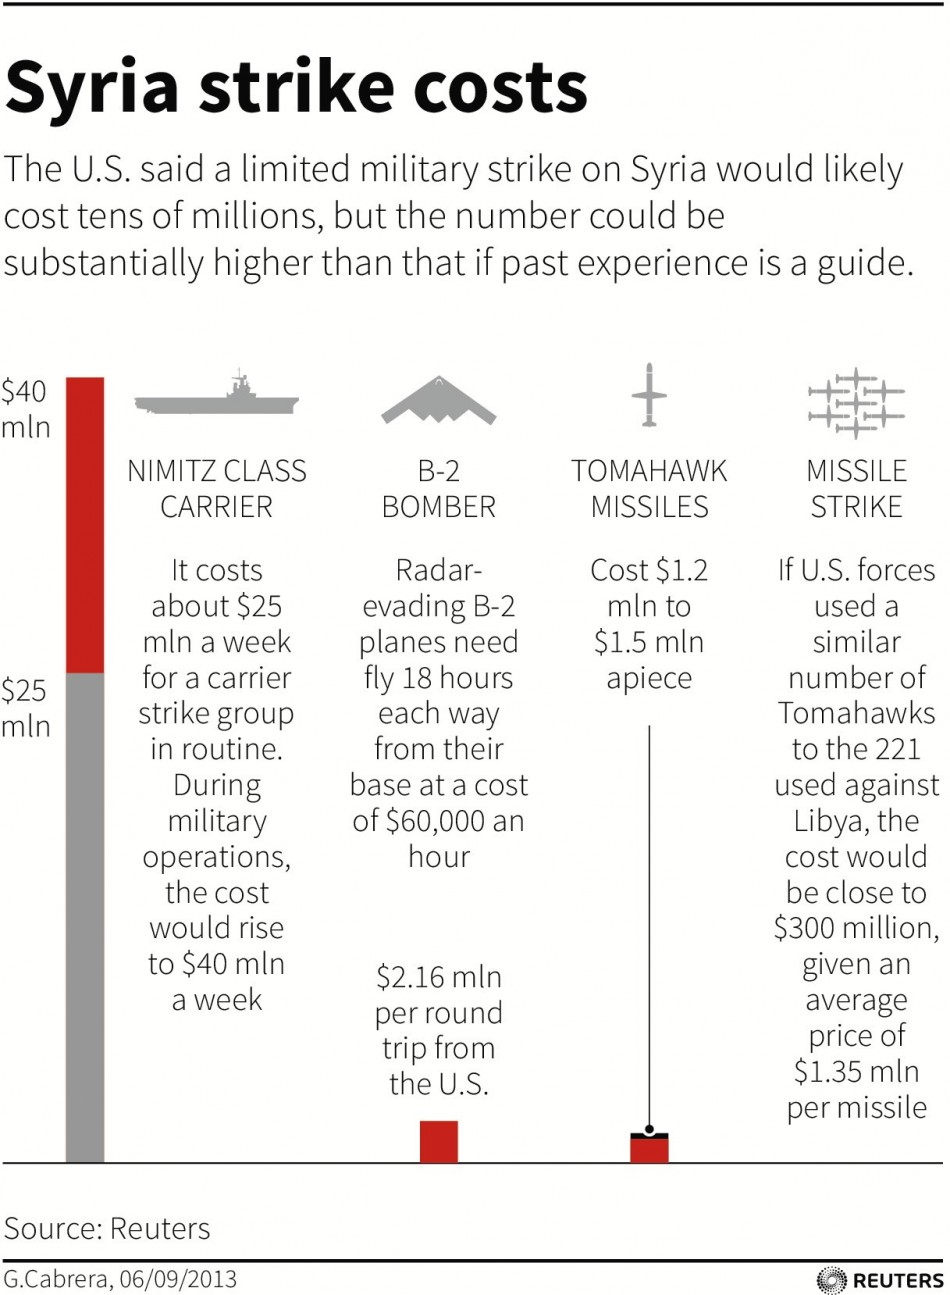 Syria Strike Costs